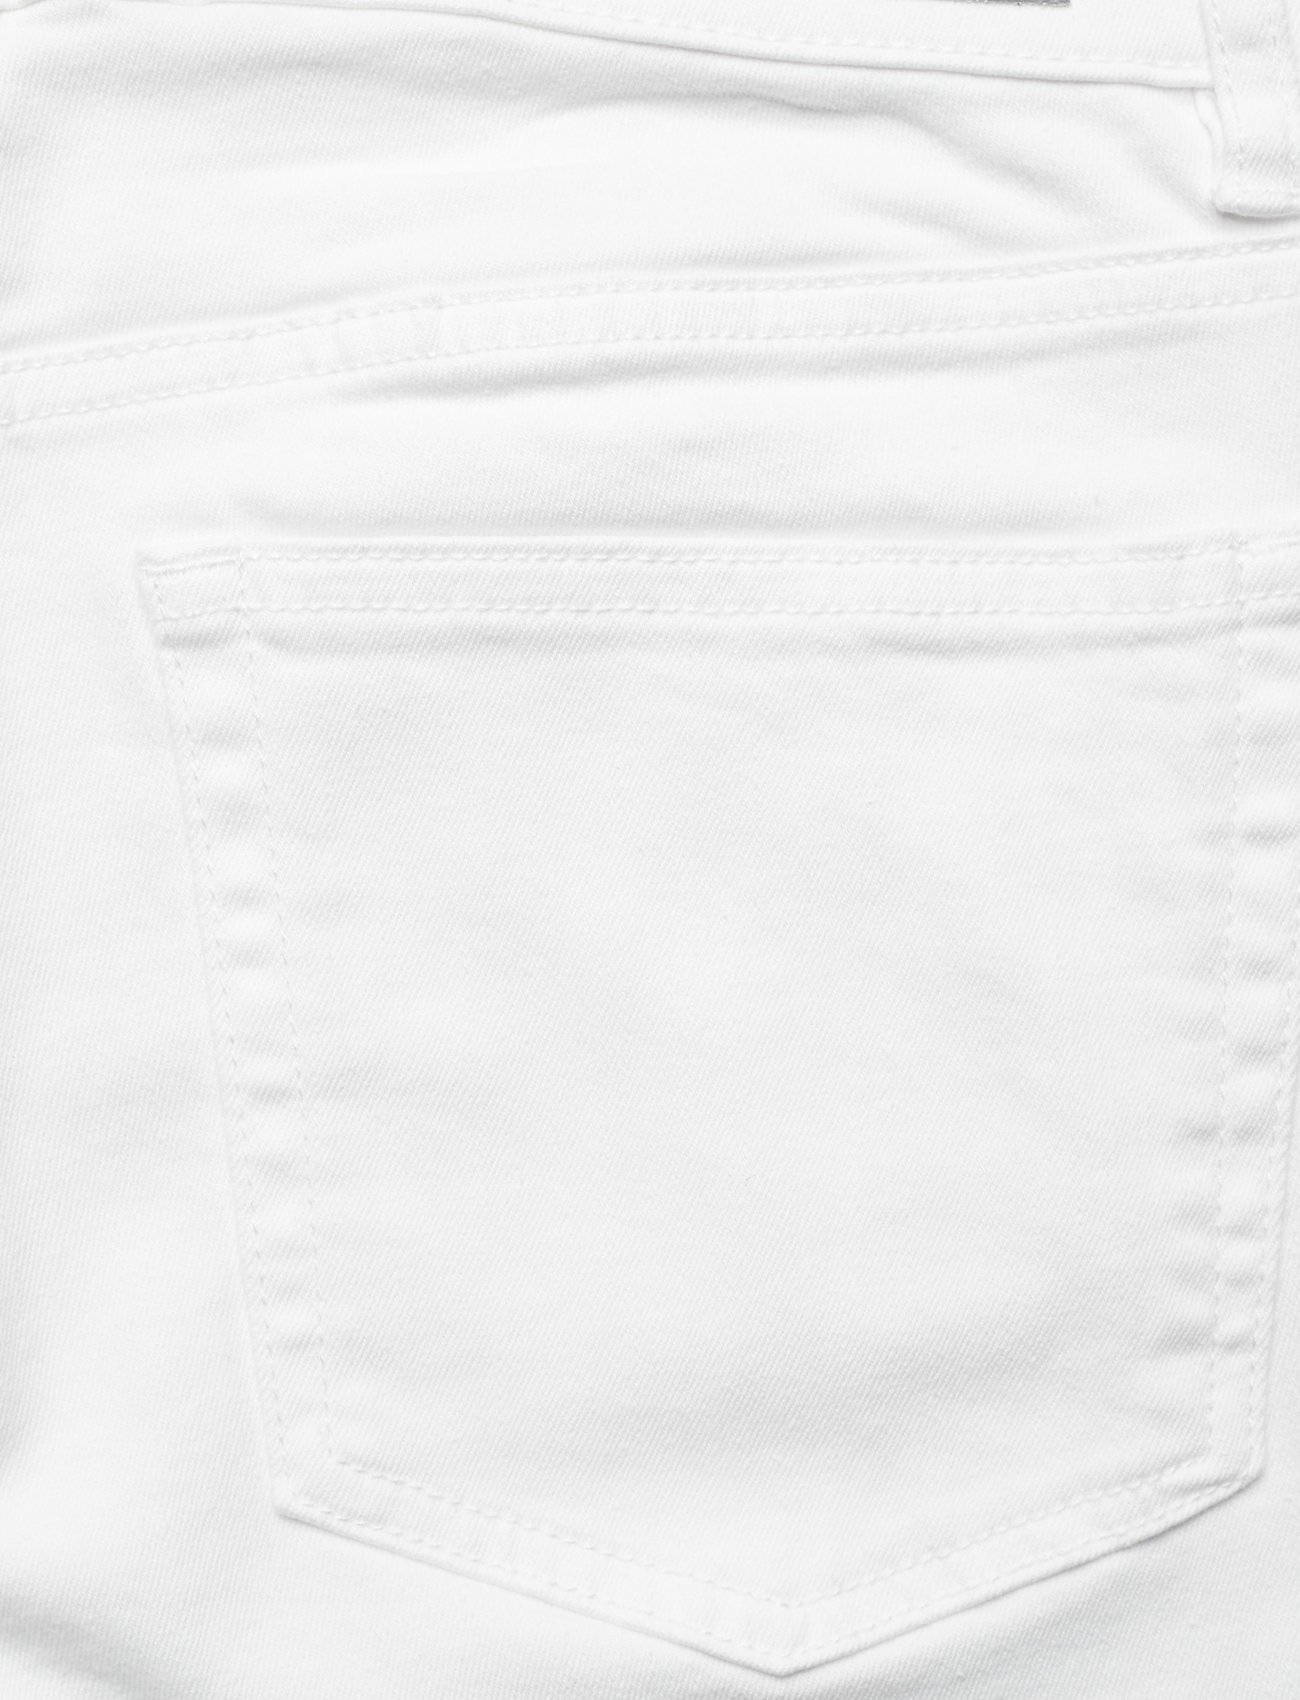 Lauren Ralph Lauren Premier Straight Ankle Jean - Jeans PERFECT WHITE WAS - Dameklær Spesialtilbud